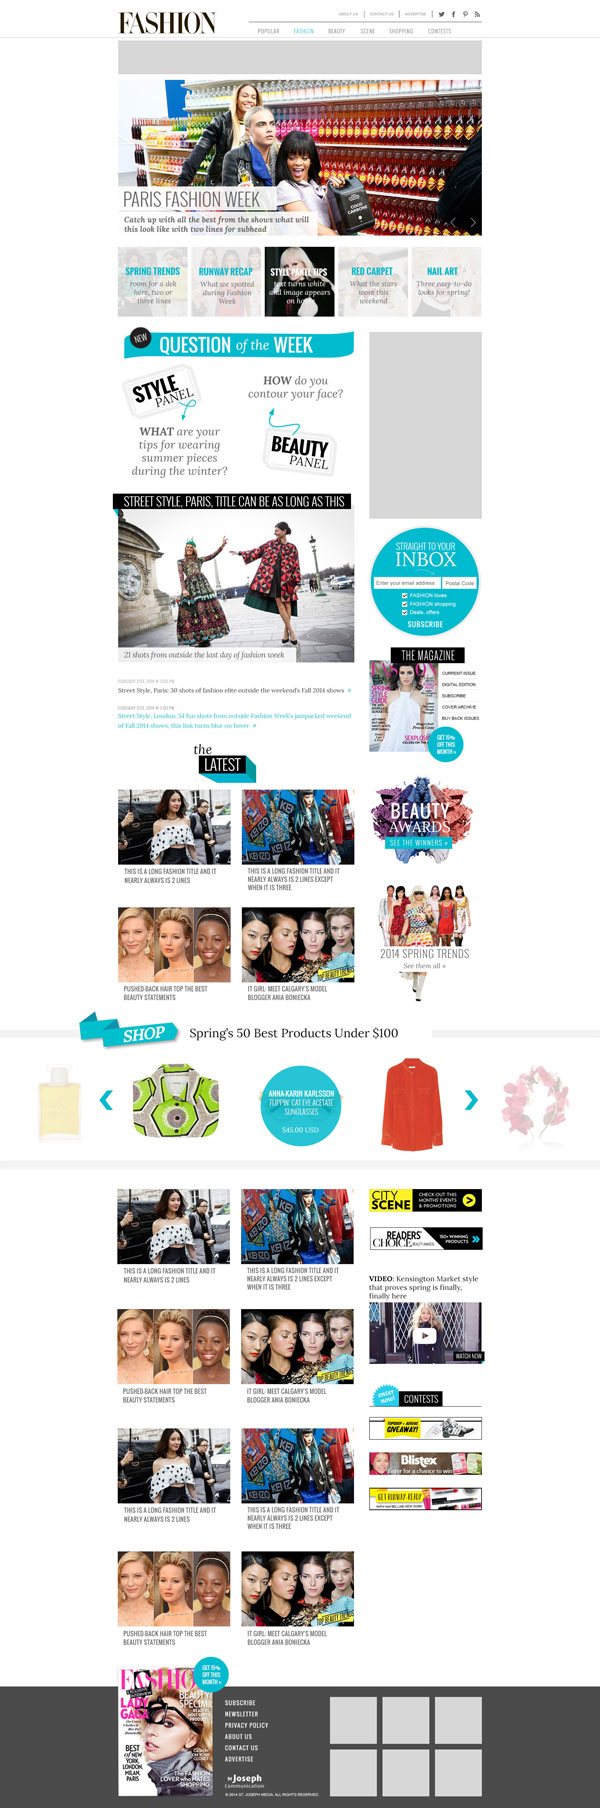 Fashion_Homepage_final